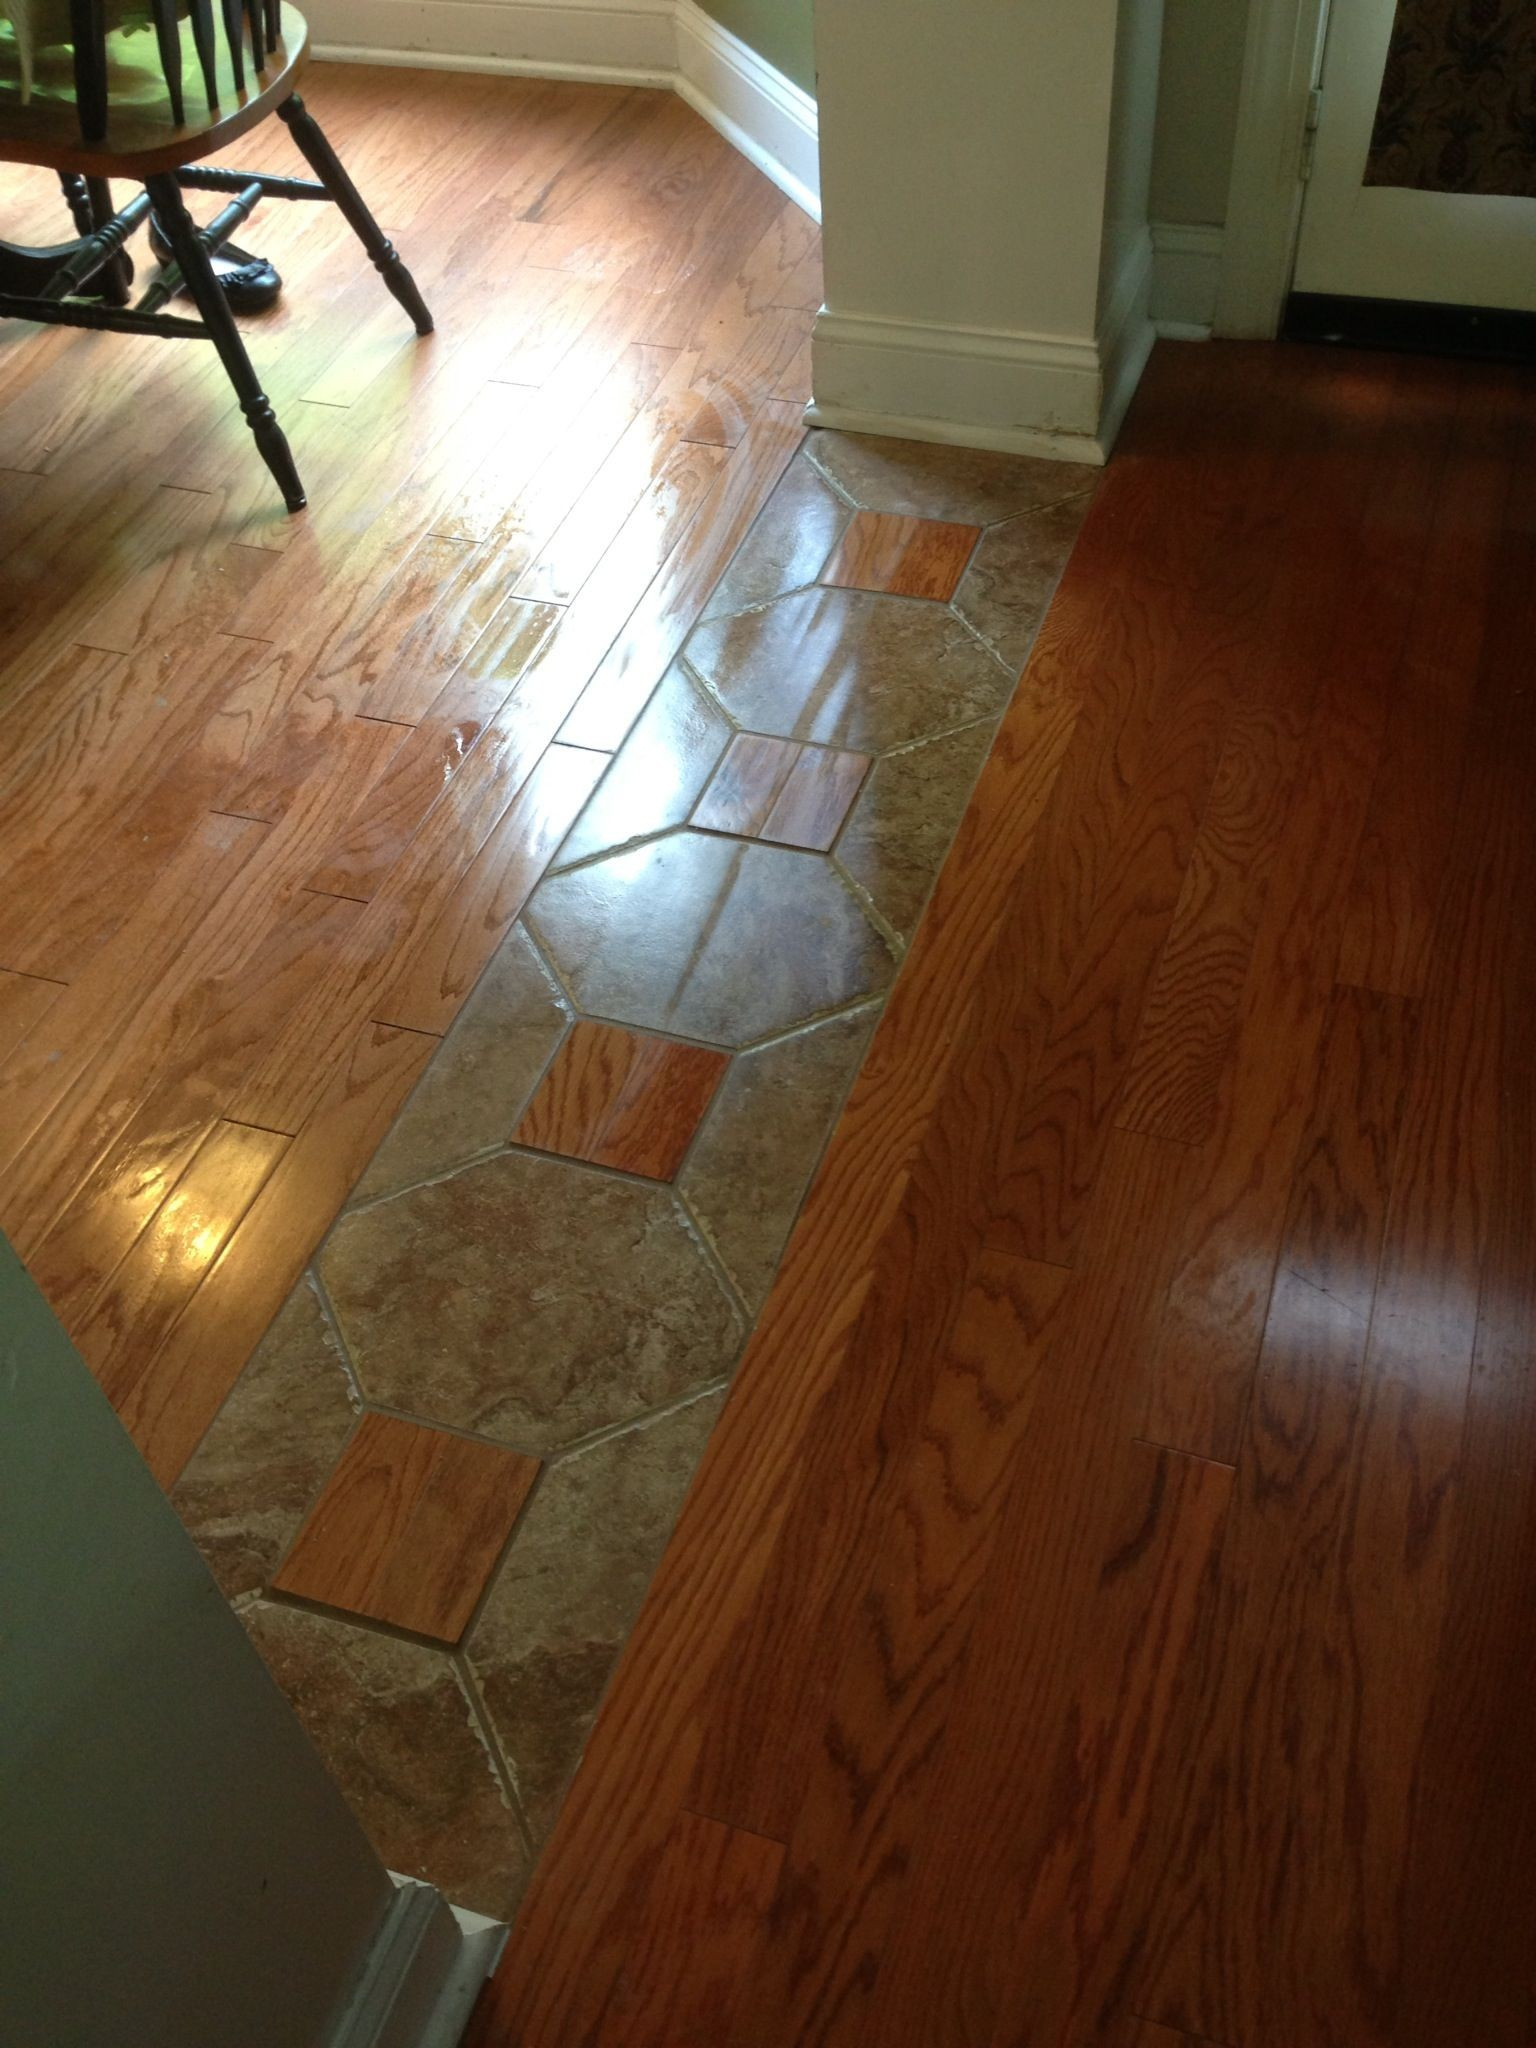 20 Wonderful Glue for Hardwood Floor Repair 2021 free download glue for hardwood floor repair of 13 awesome how to patch hardwood floor collection dizpos com regarding how to patch hardwood floor fresh a really cool way to tie two different hardwood lot